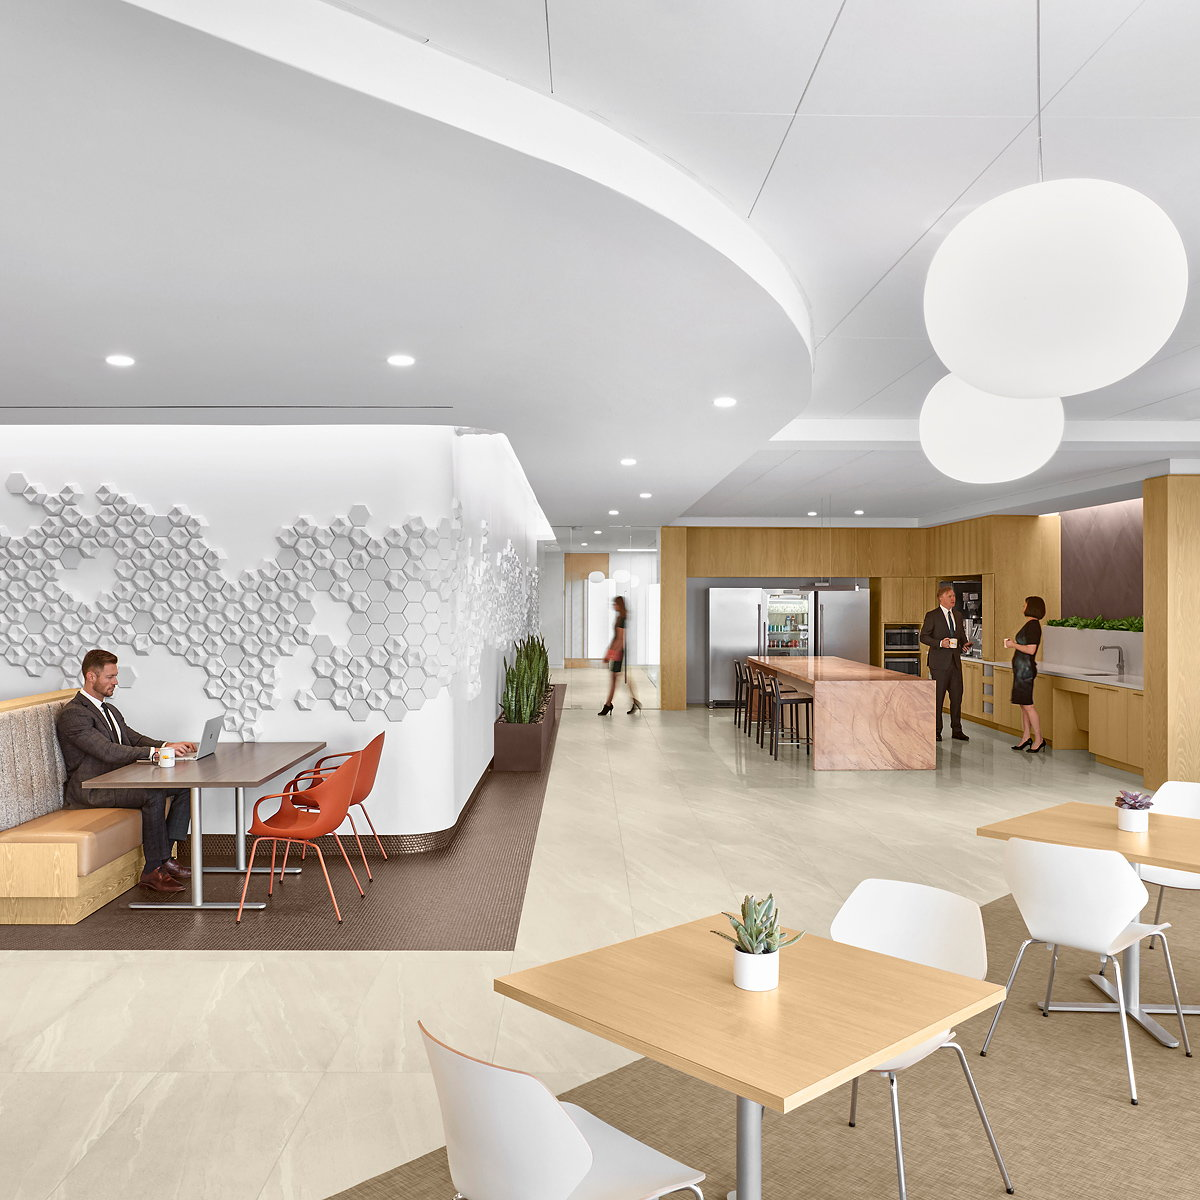 lauckgroup Designs Bright and Airy Space for Winstead Attorneys